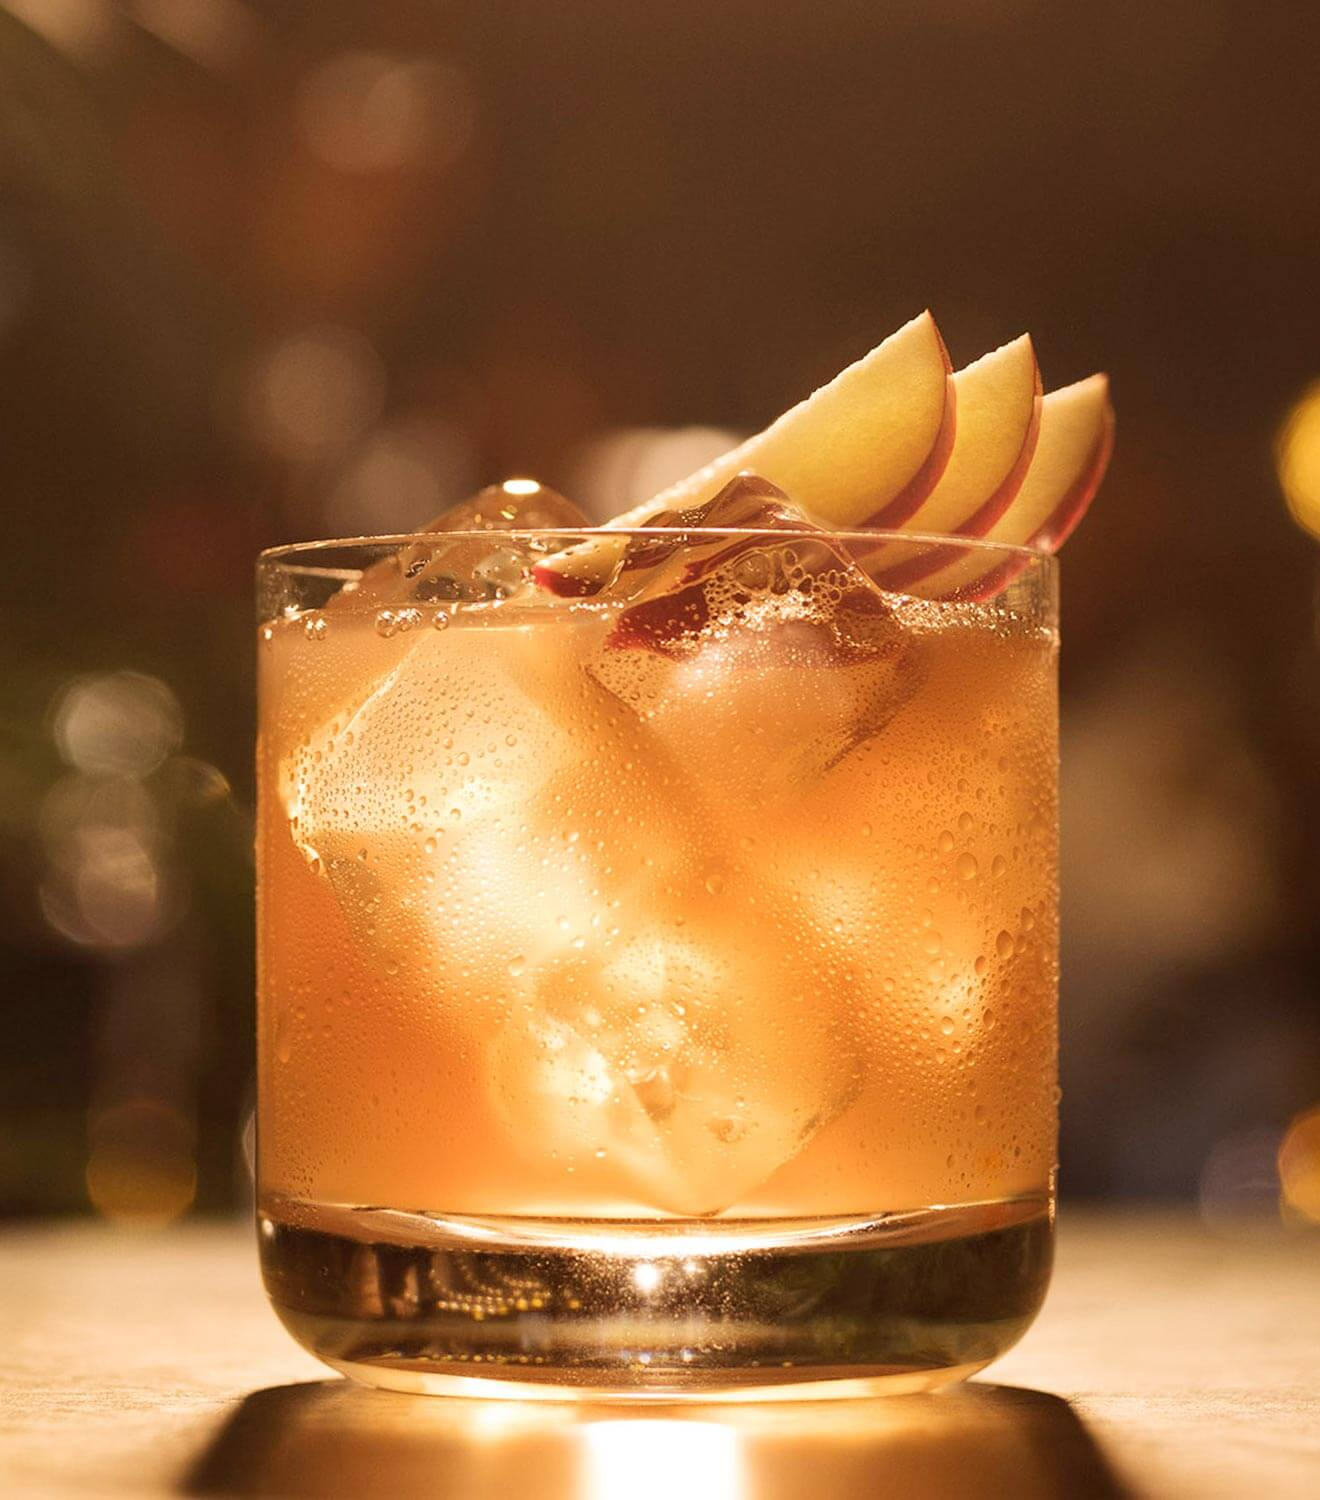 BACARDÍ Treacle cocktail with apple garnish and fall spices